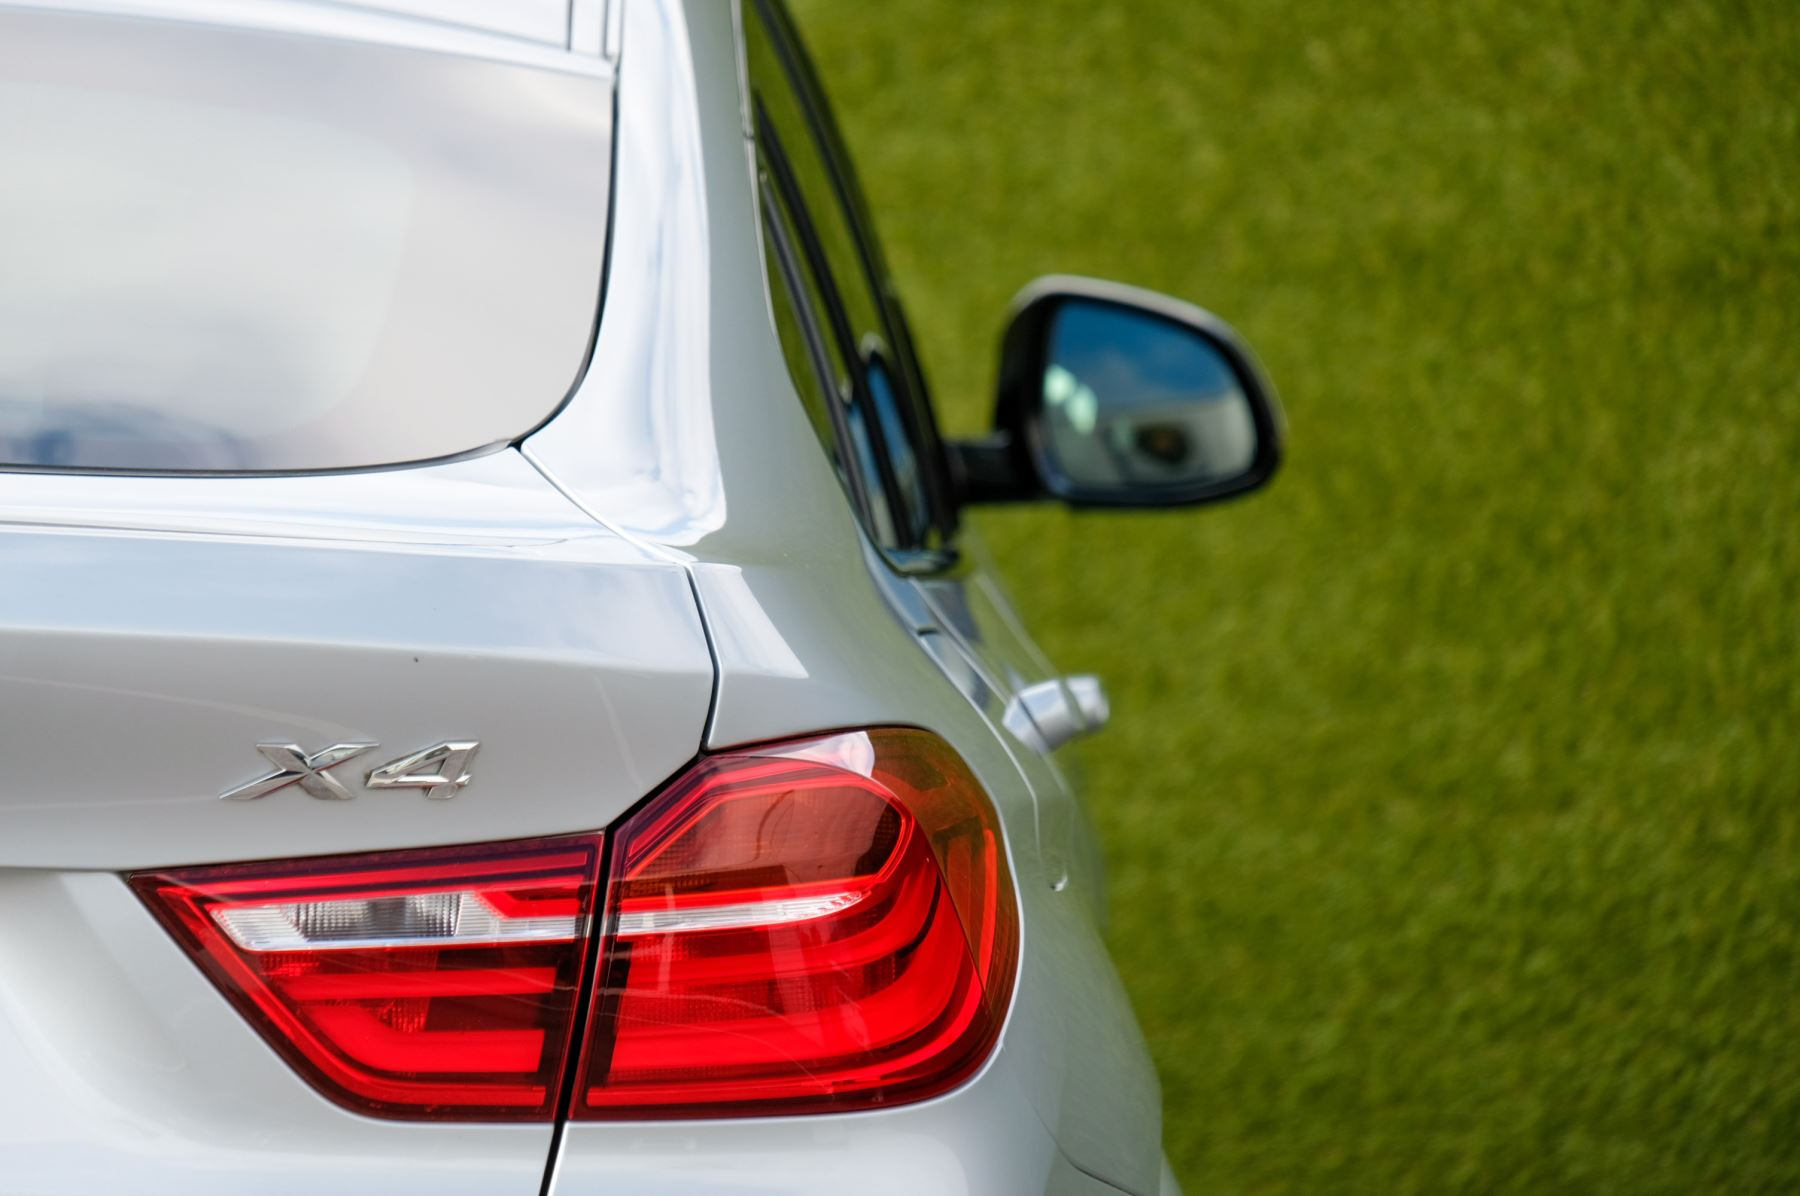 BMW X4 xDrive30d M Sport 5dr Step - M Sport Plus Package - Interior Comfort Package - Elec Glass Sunroof -  image 7